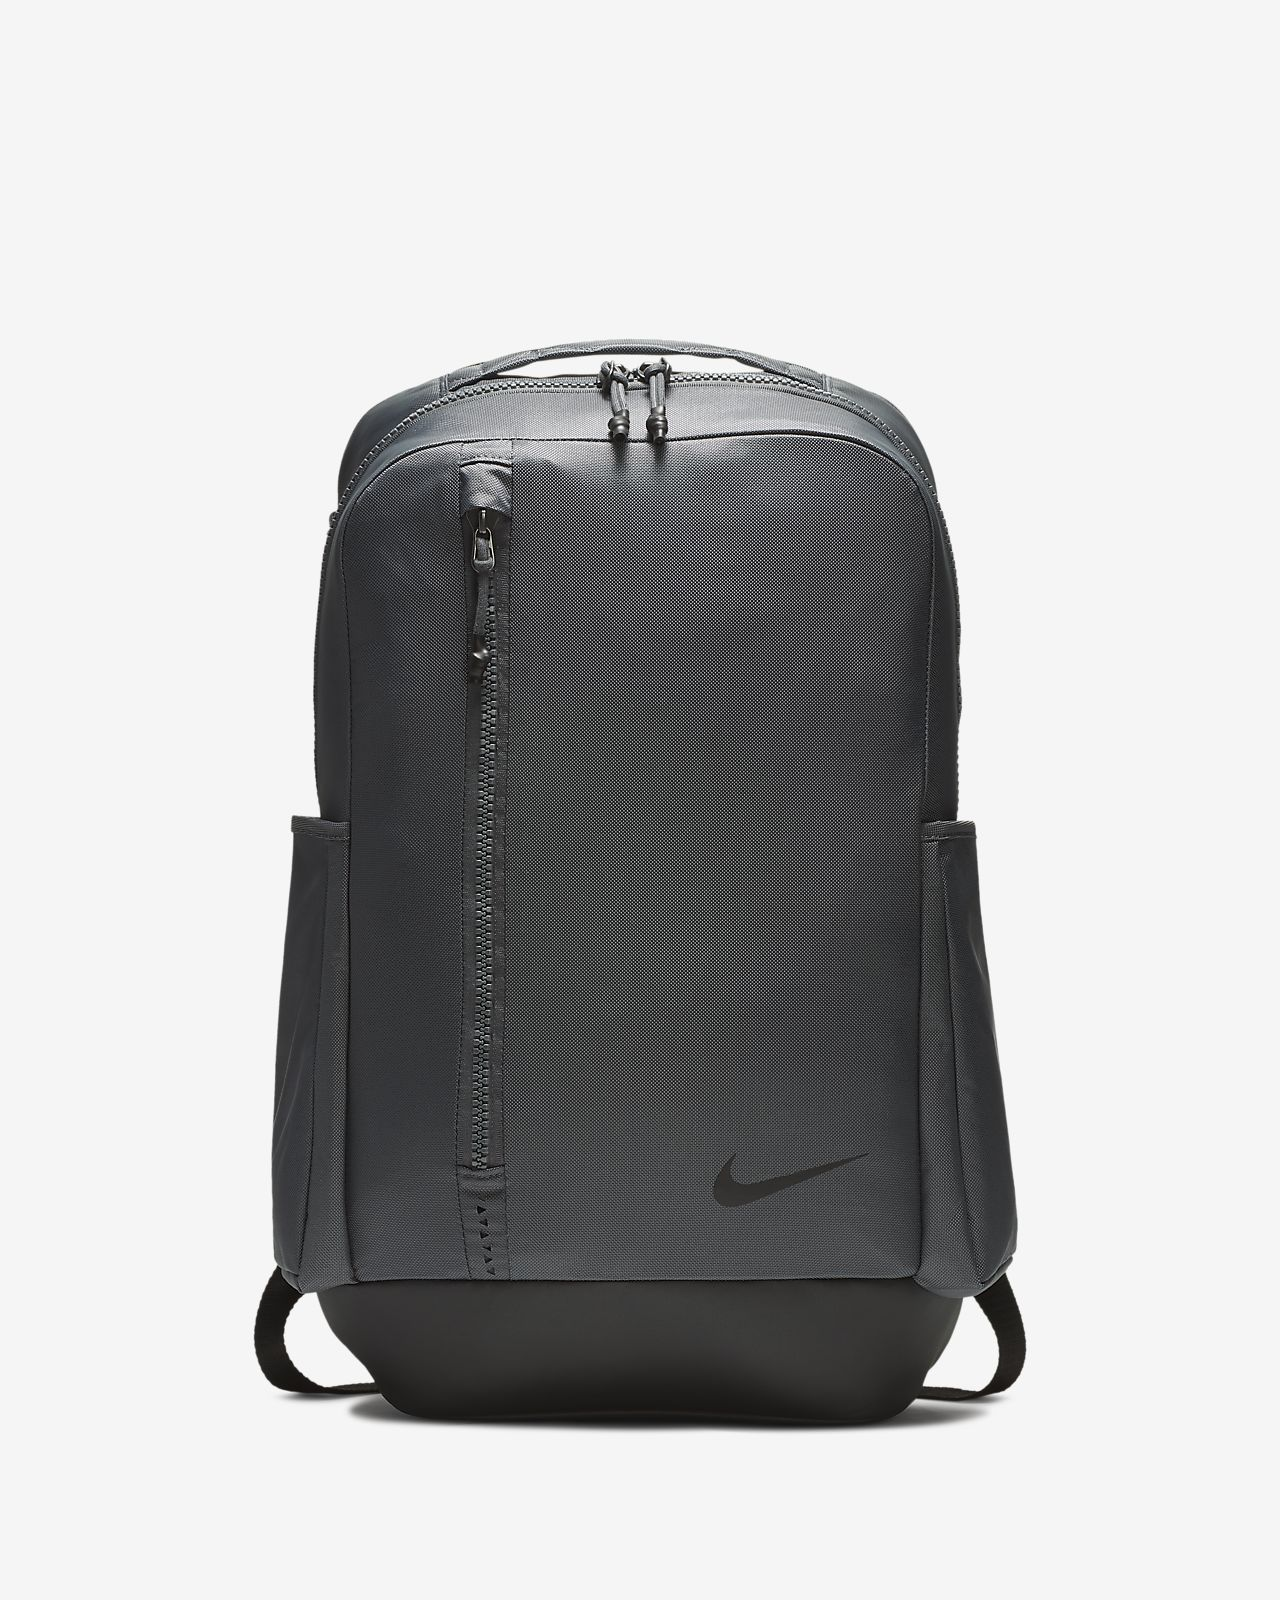 023c8cf08ed7 Nike Vapor Power Backpack Black